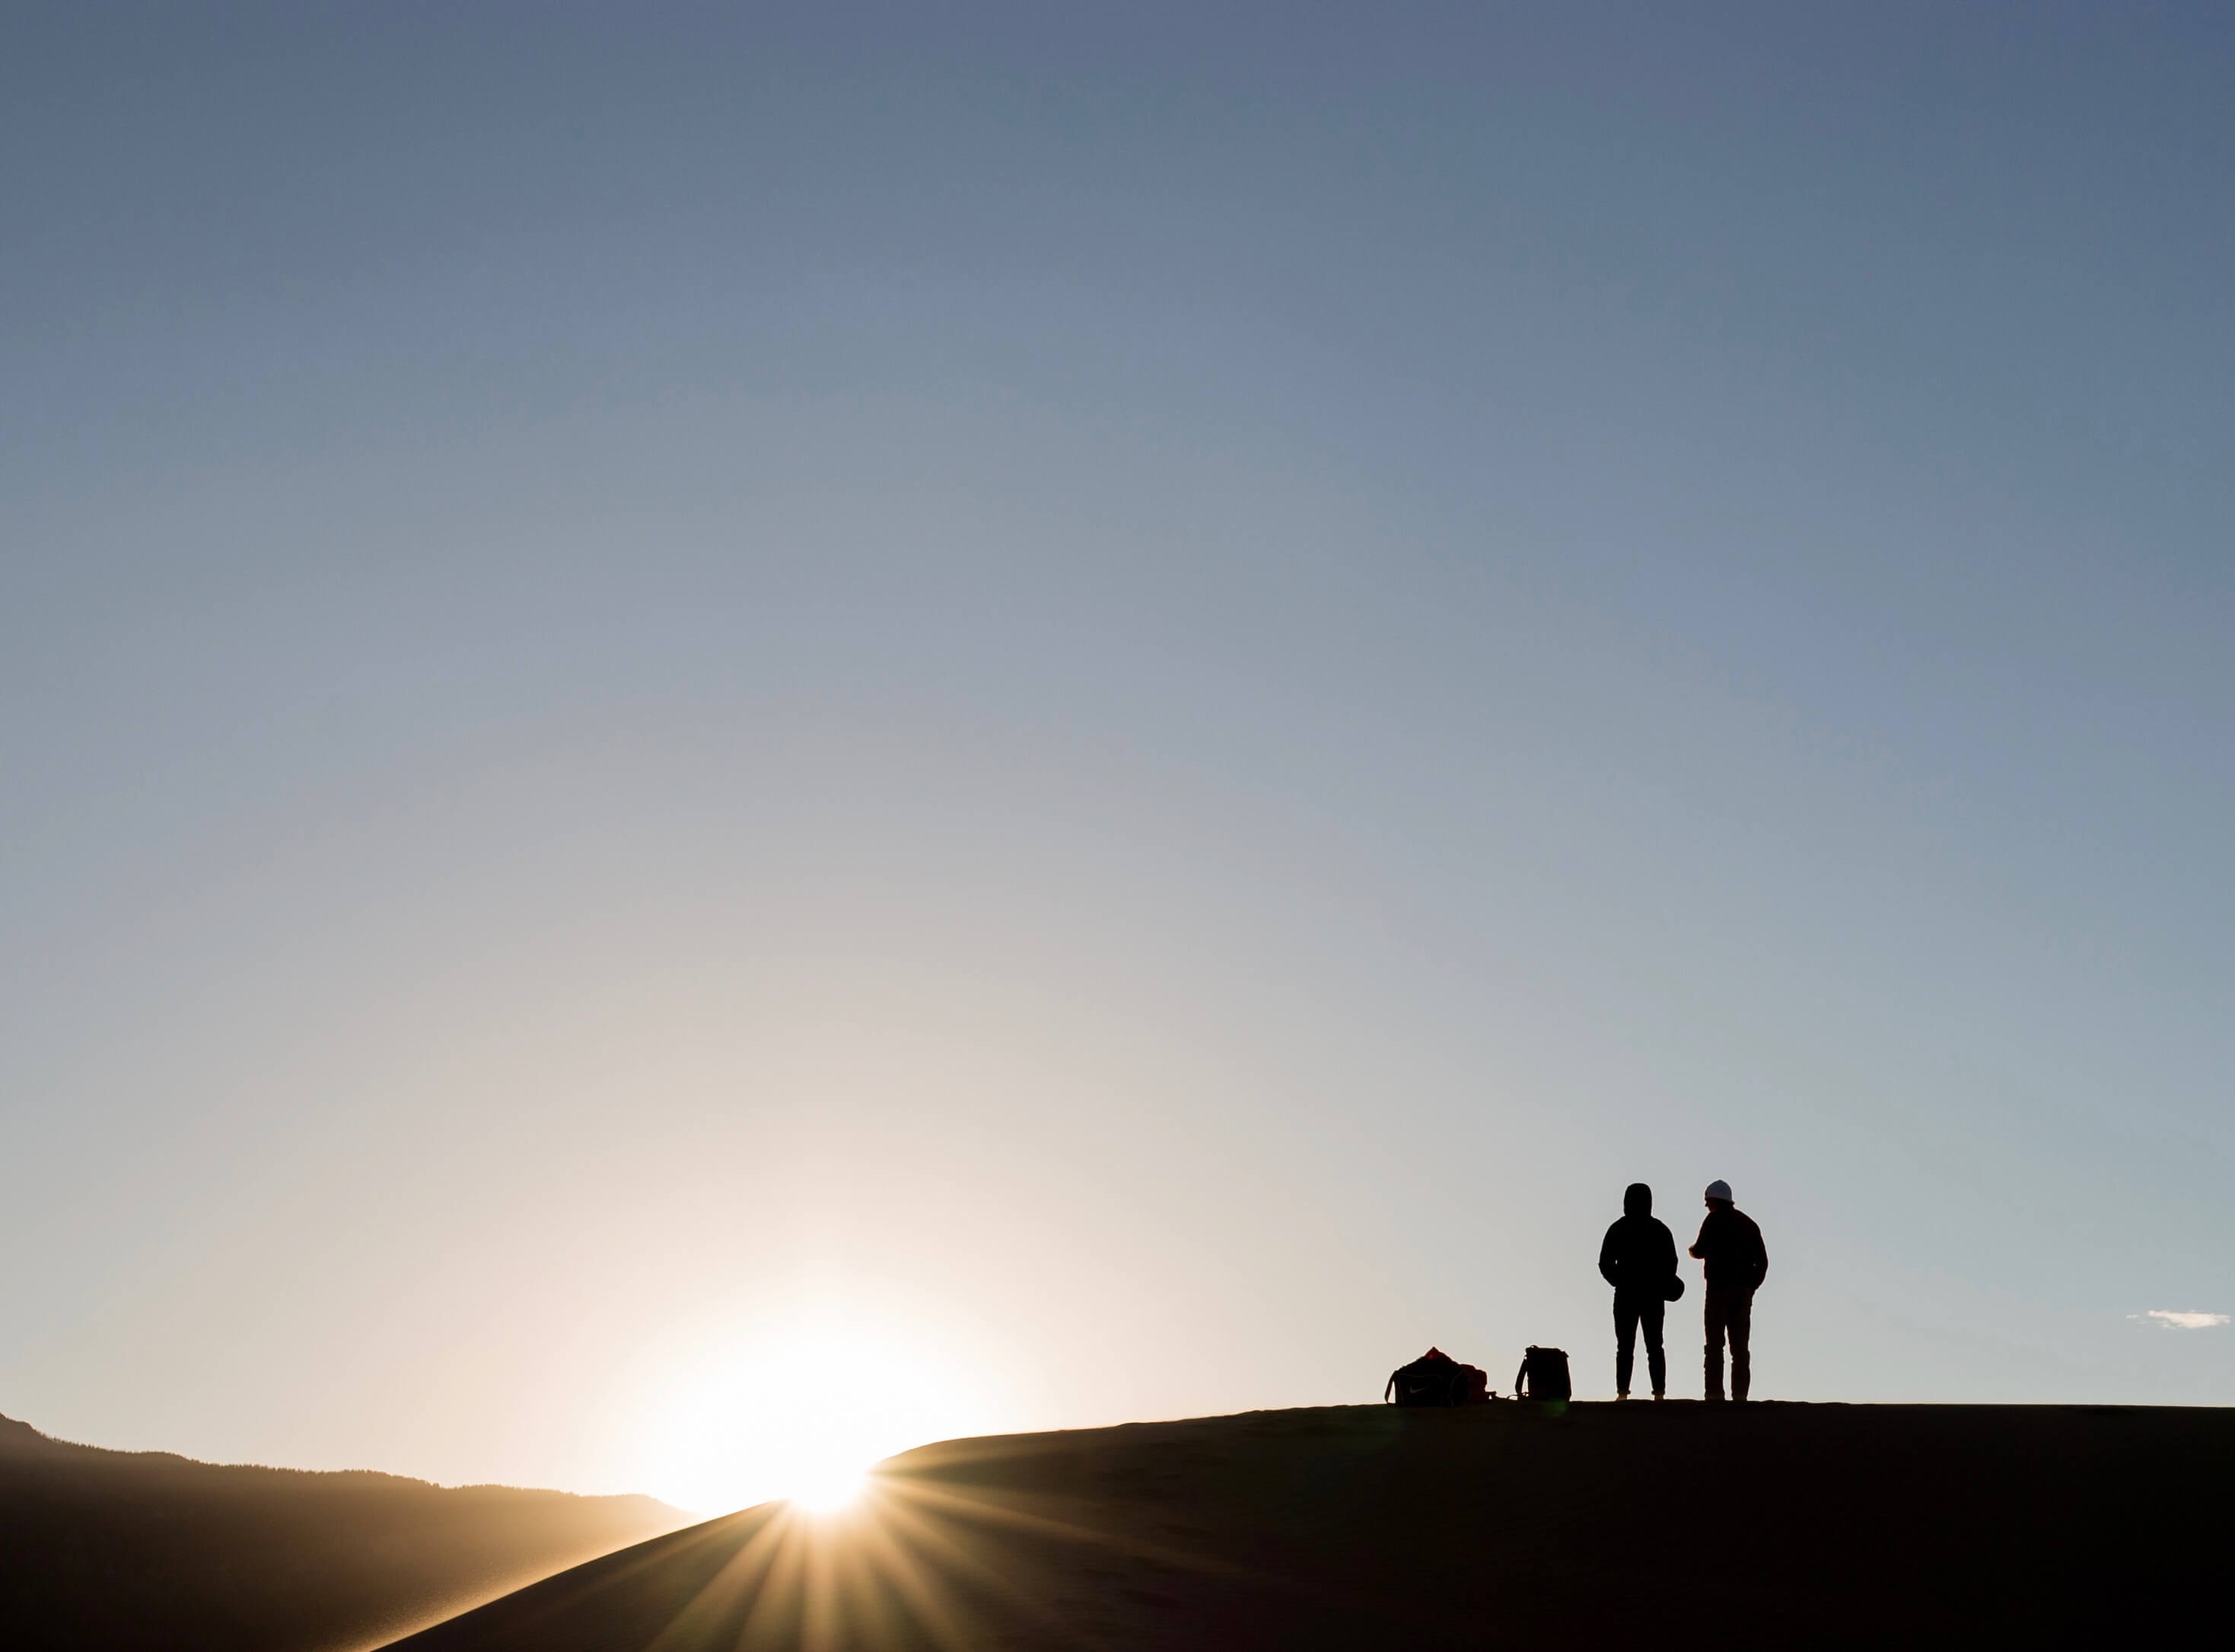 Silhouette of a couple atop a sand dune at sunset